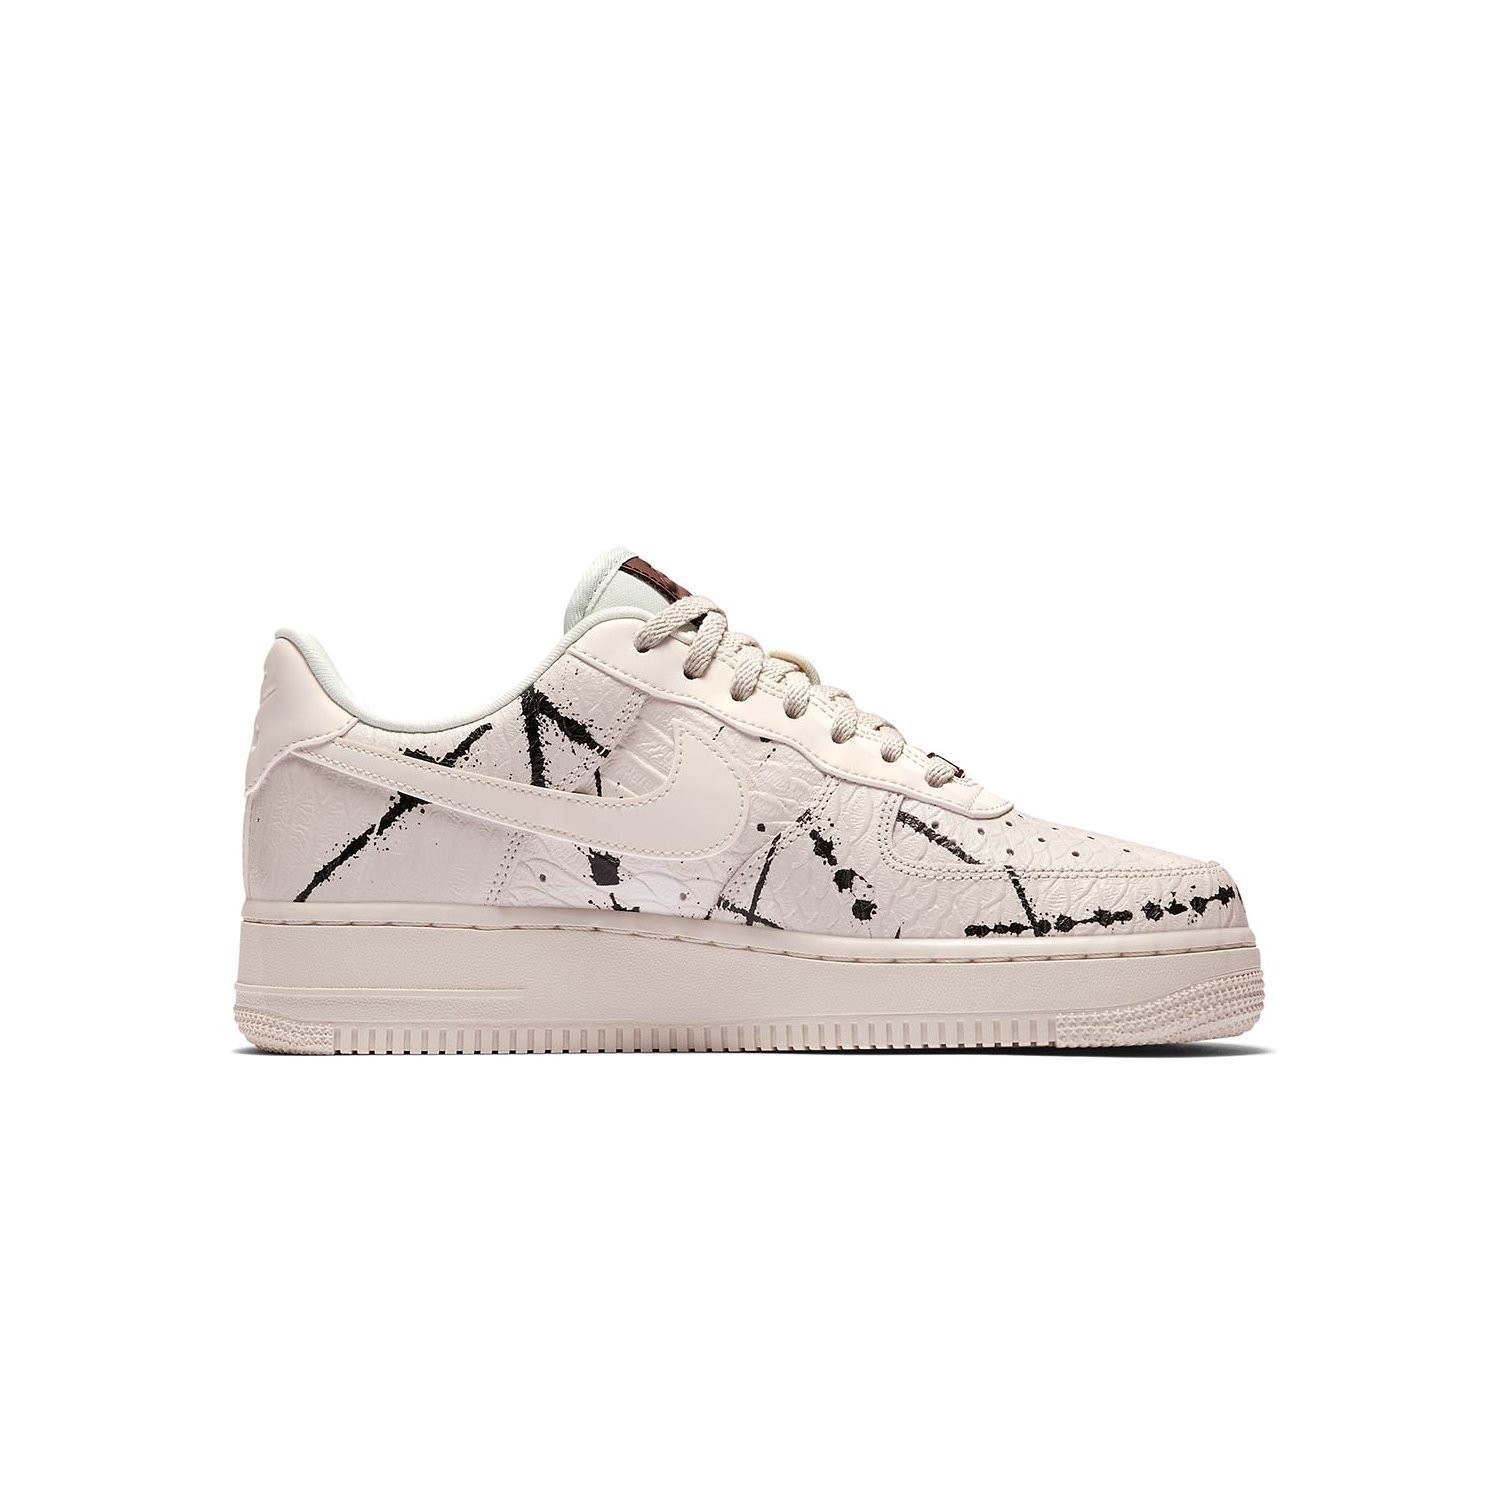 7150e9733cd Nike Women s Air Force 1  07 LX White 898889-007 (Size  5.5)  Amazon.co.uk   Shoes   Bags